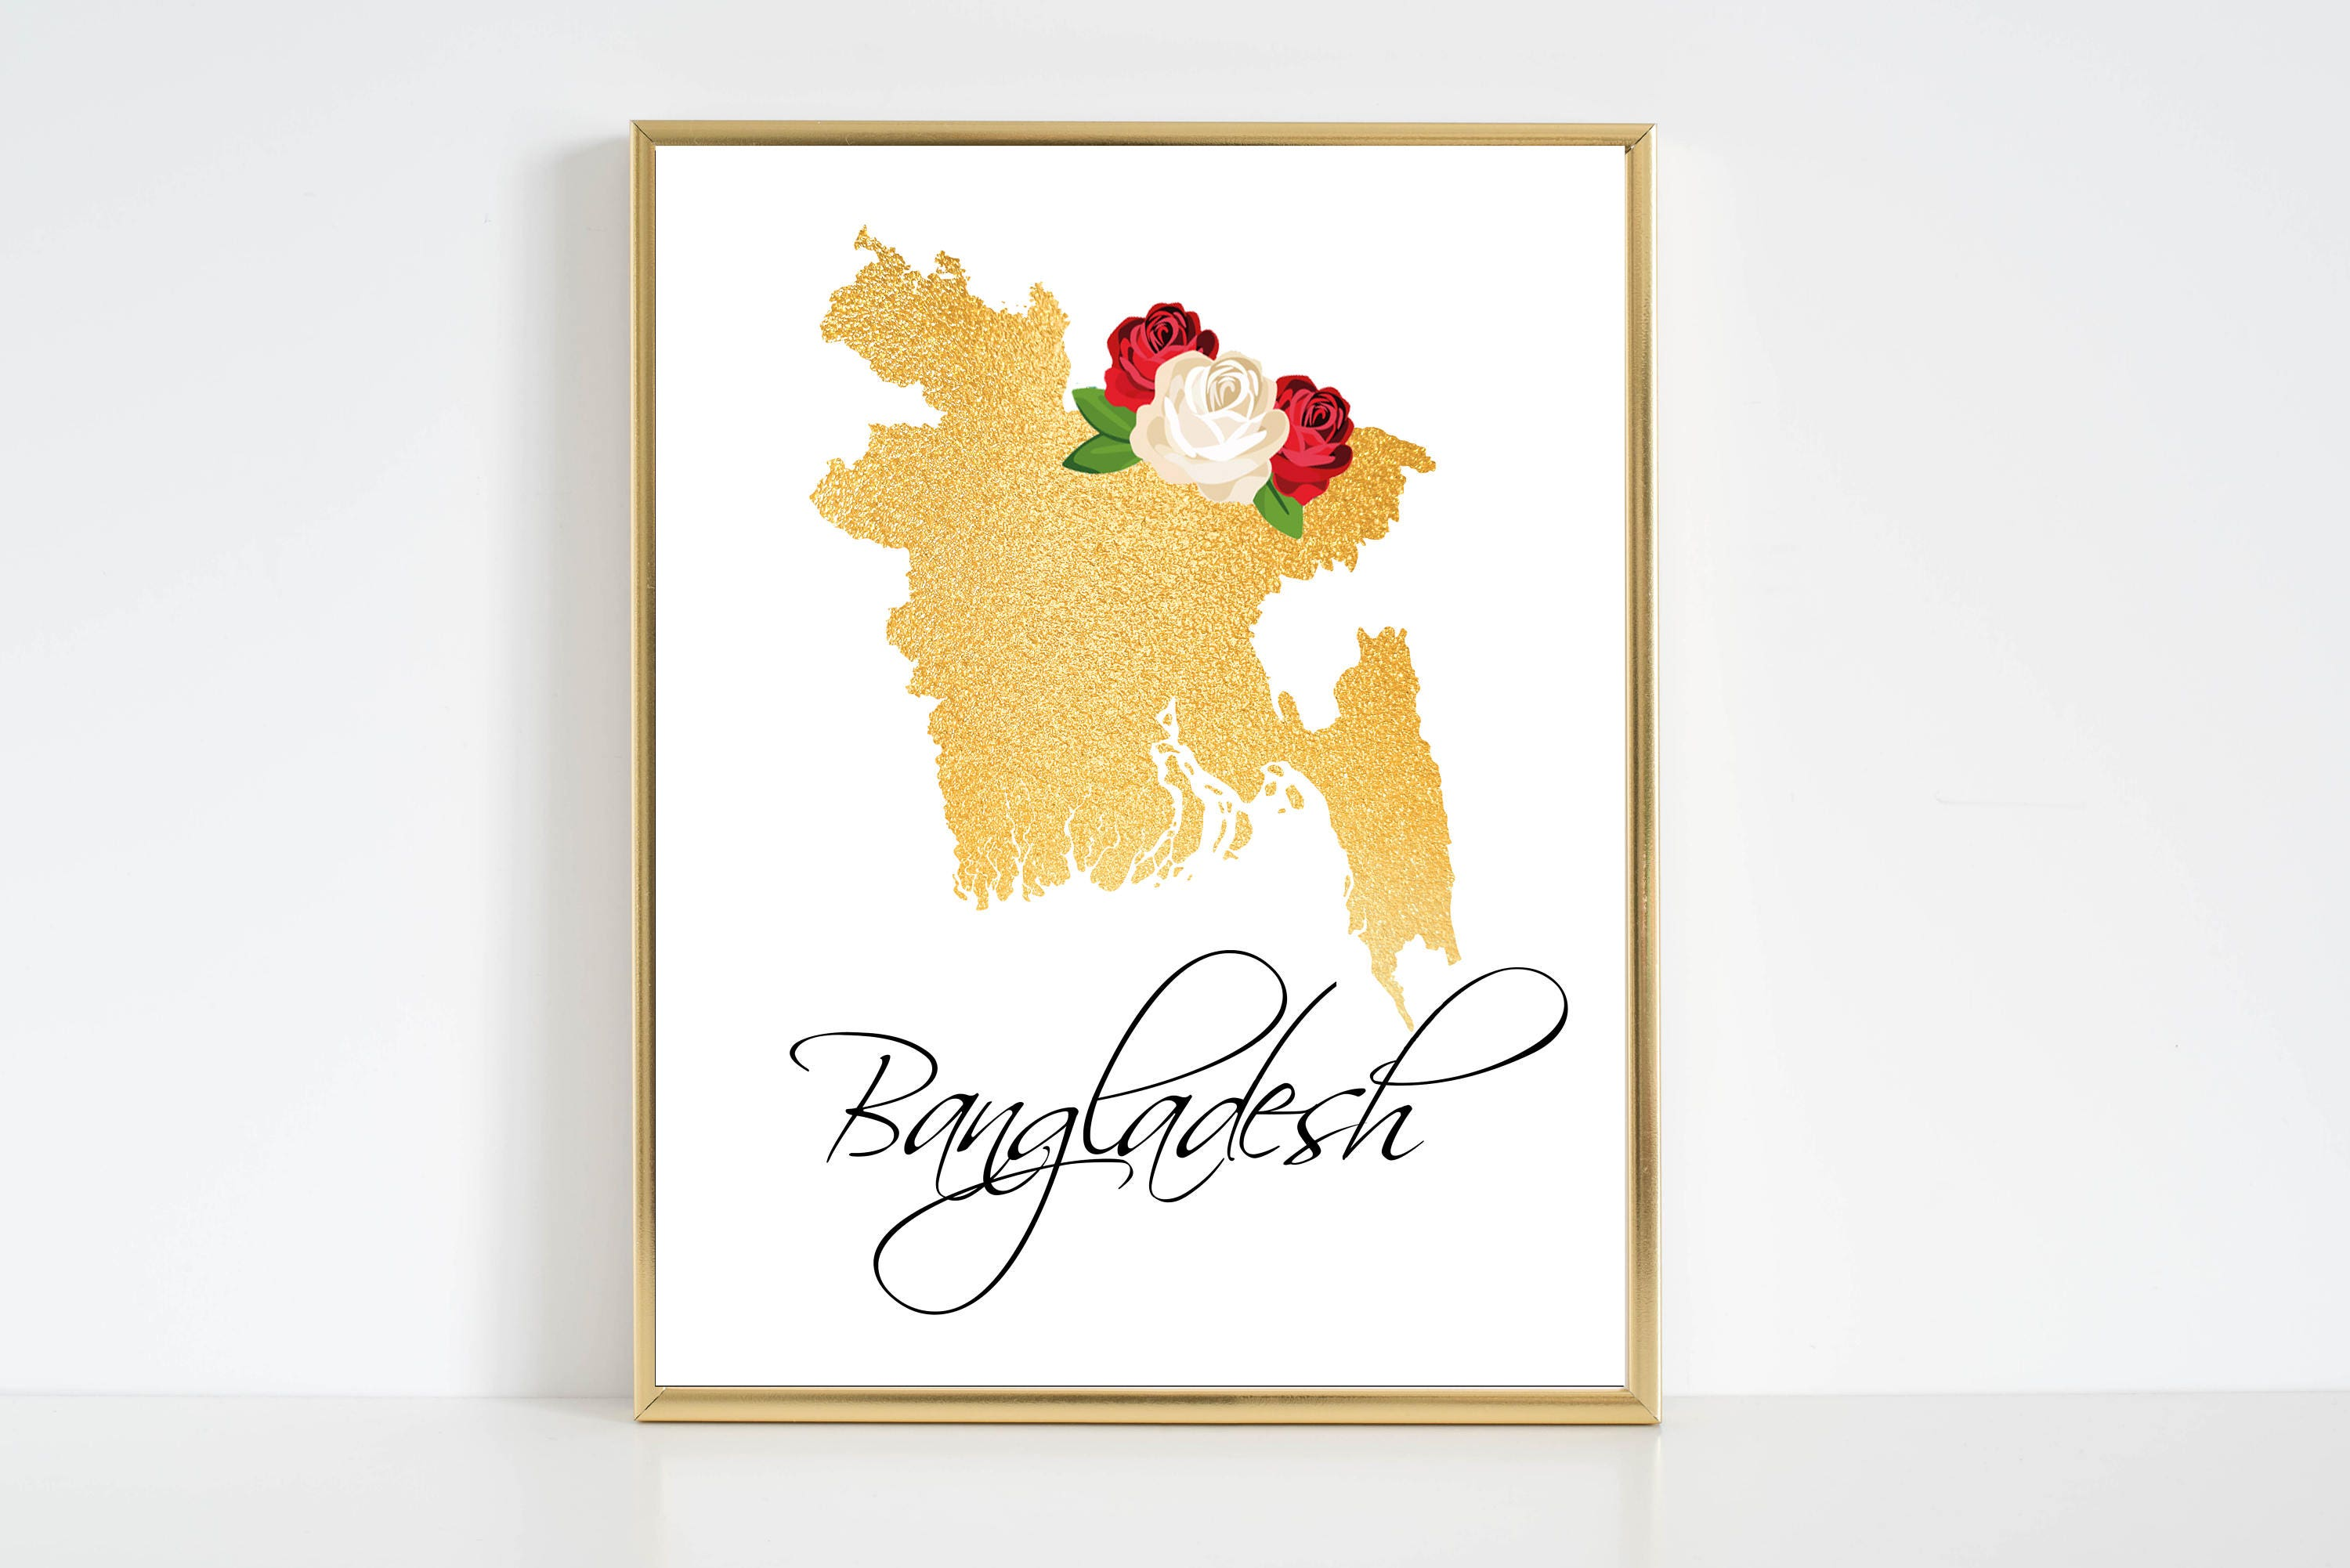 Bangladesh Map. Bangladesh Printable. Bangladesh Wall Art.